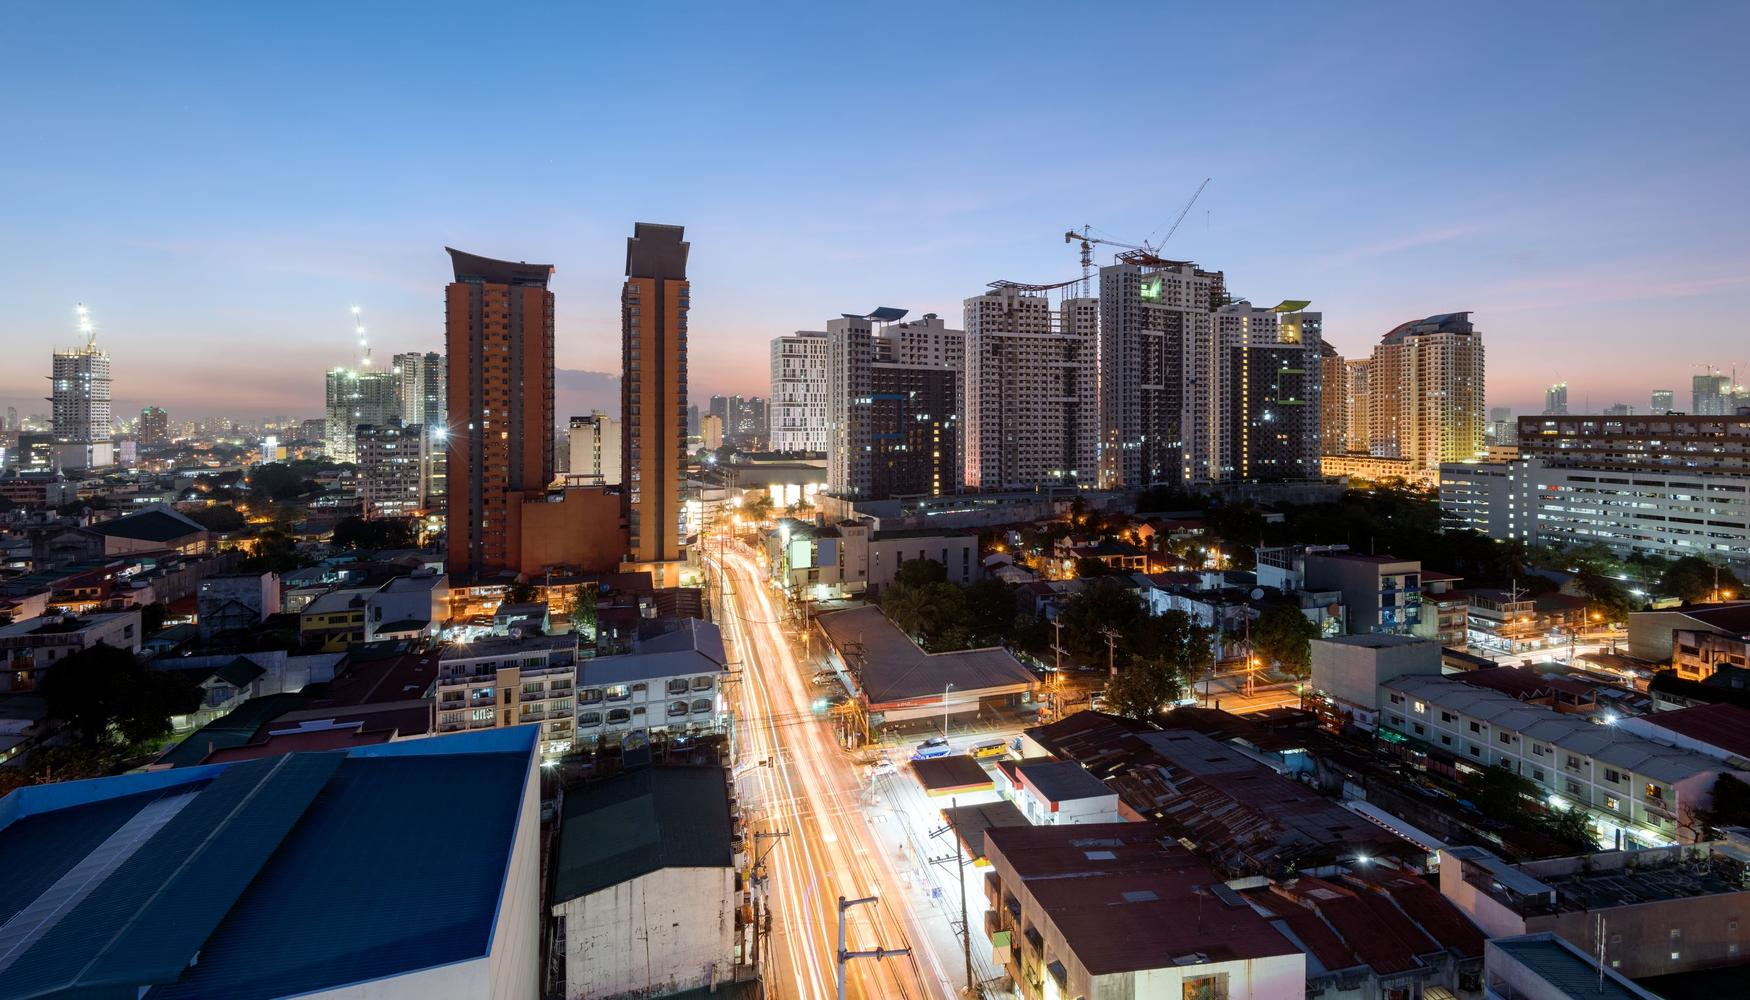 6 Places to Tour in Quezon City on a Budget